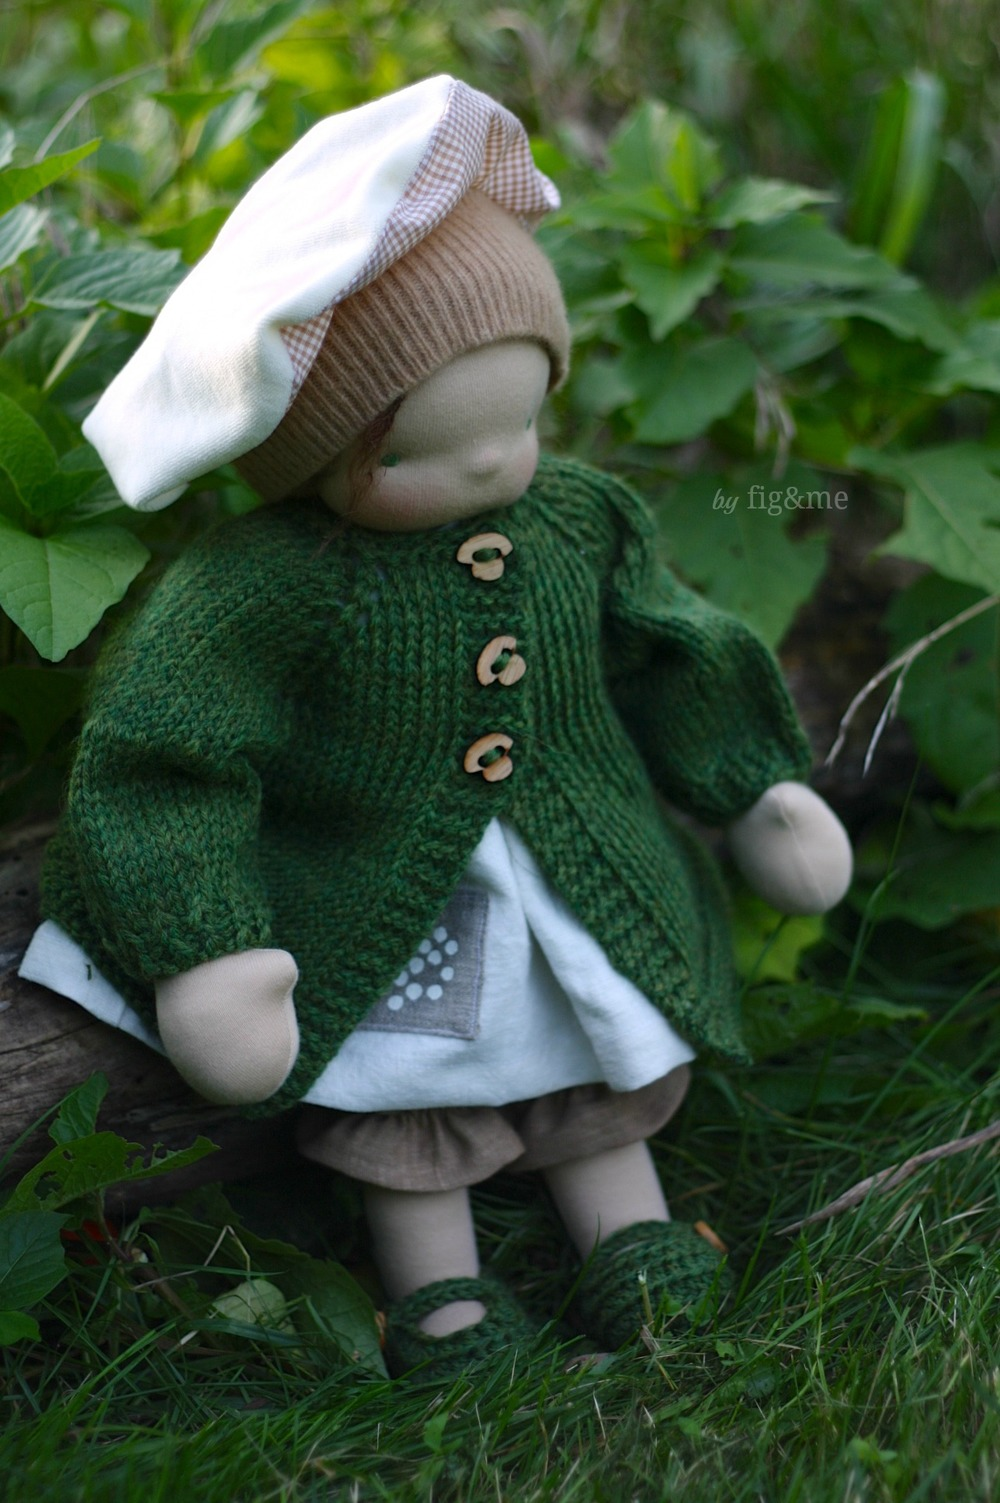 Molly in her green coat, by Fig and me.